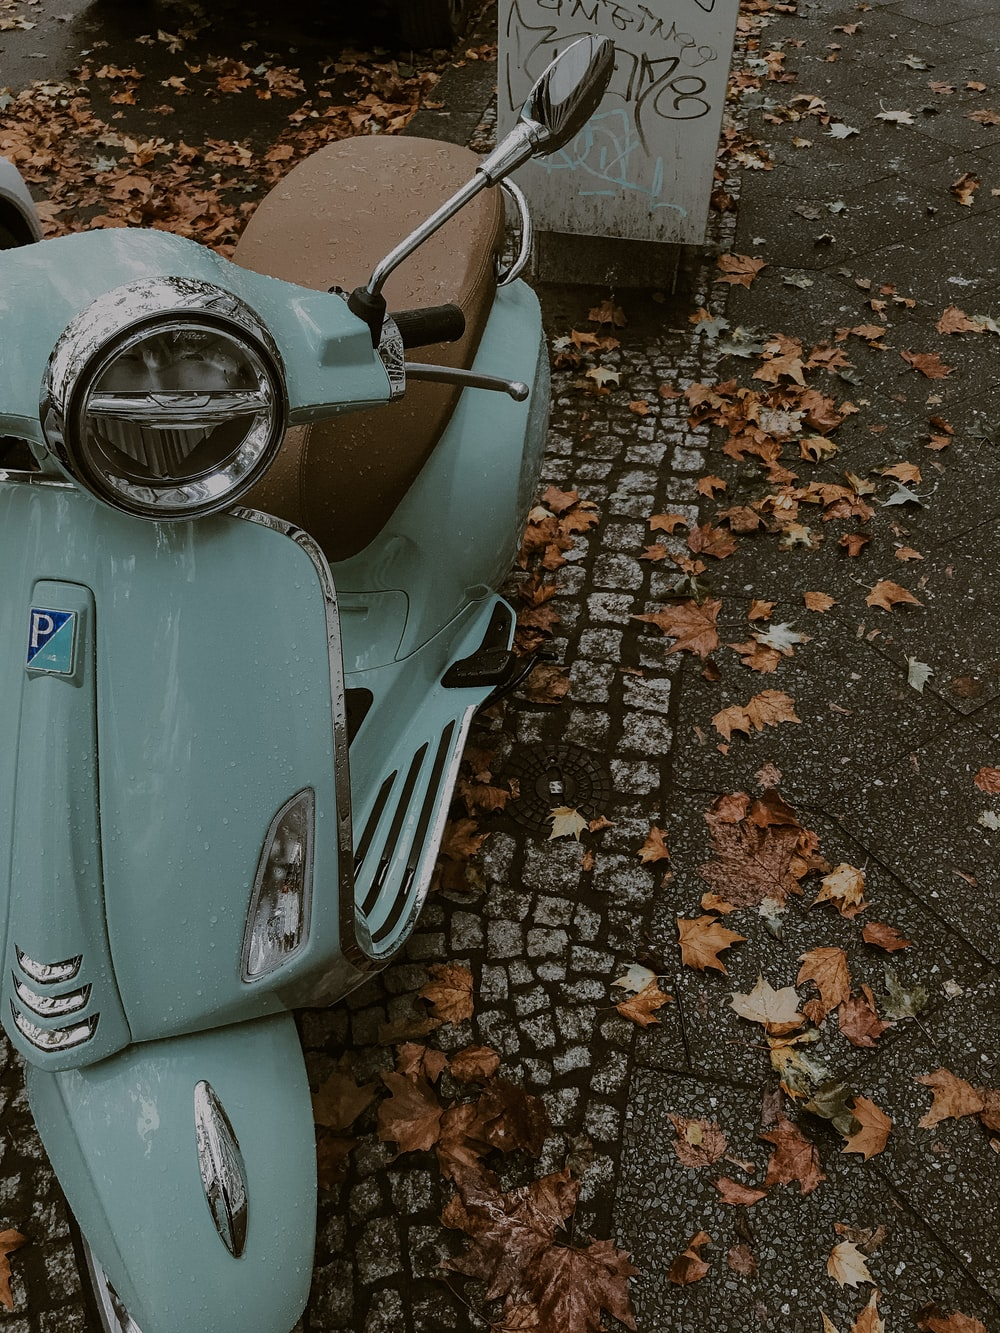 blue and silver motor scooter on brown and gray concrete floor